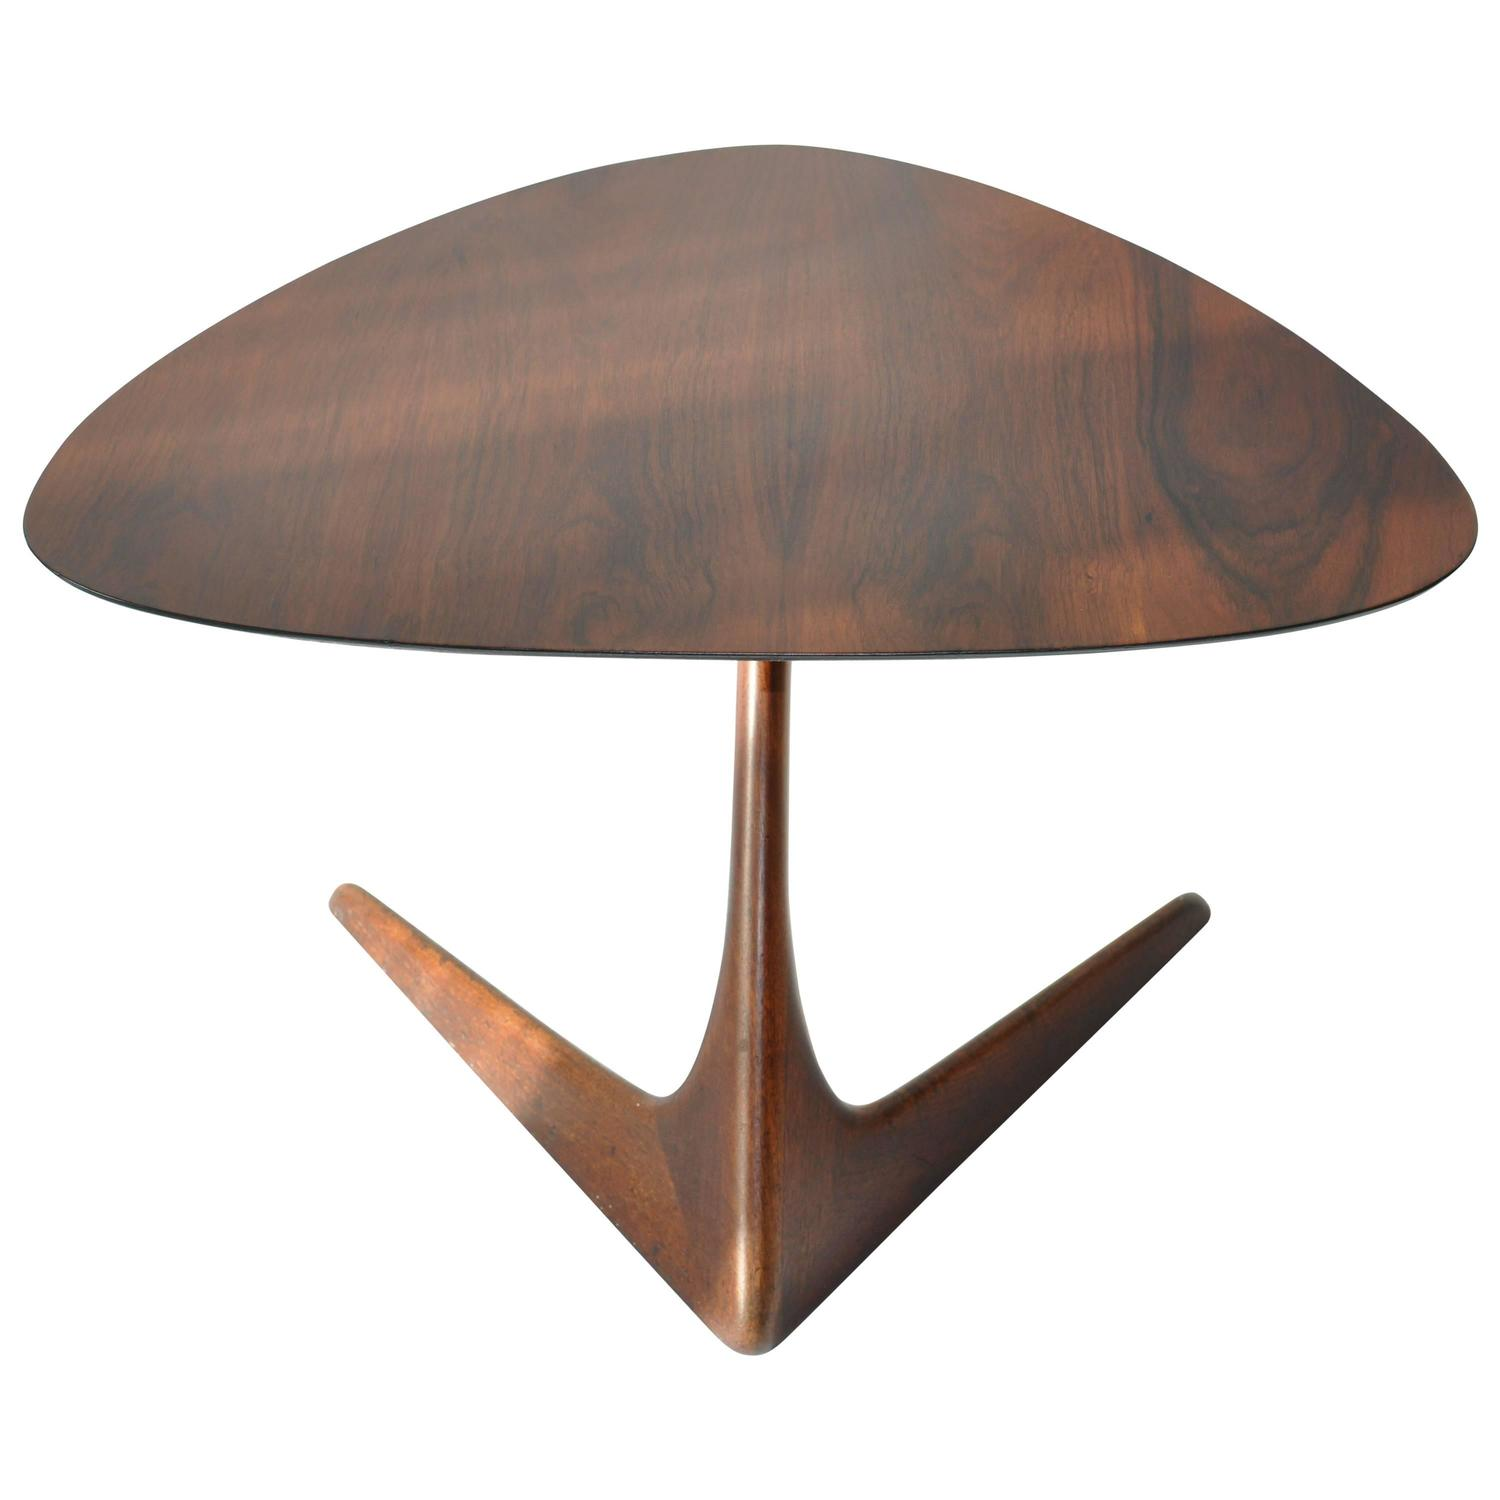 Rare Vladimir Kagan Side Table at 1stdibs